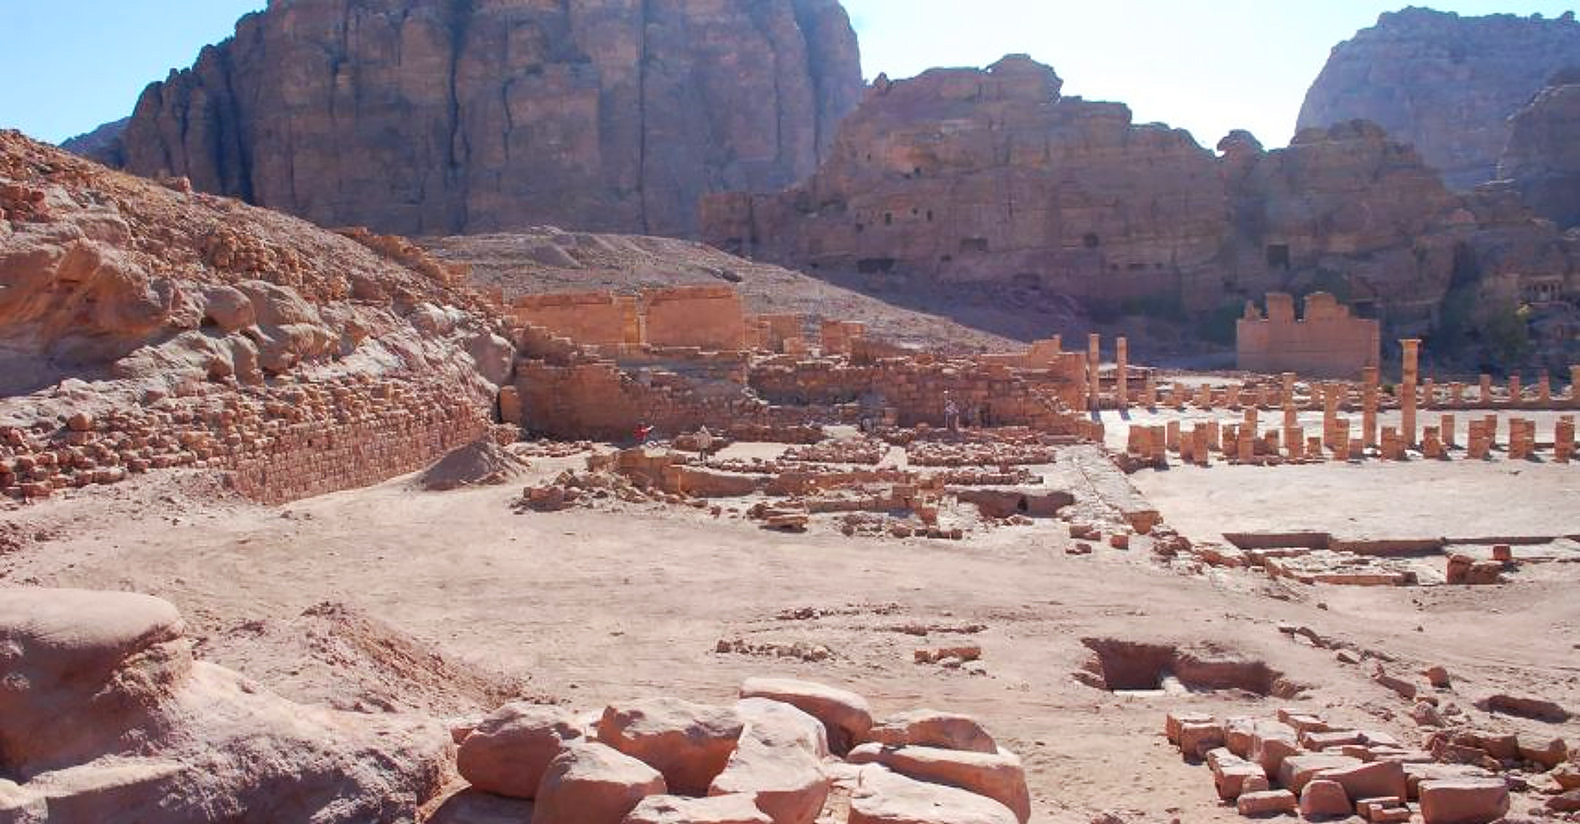 2,000-year-old forgotten irrigation system unearthed at ancient Petra gardens